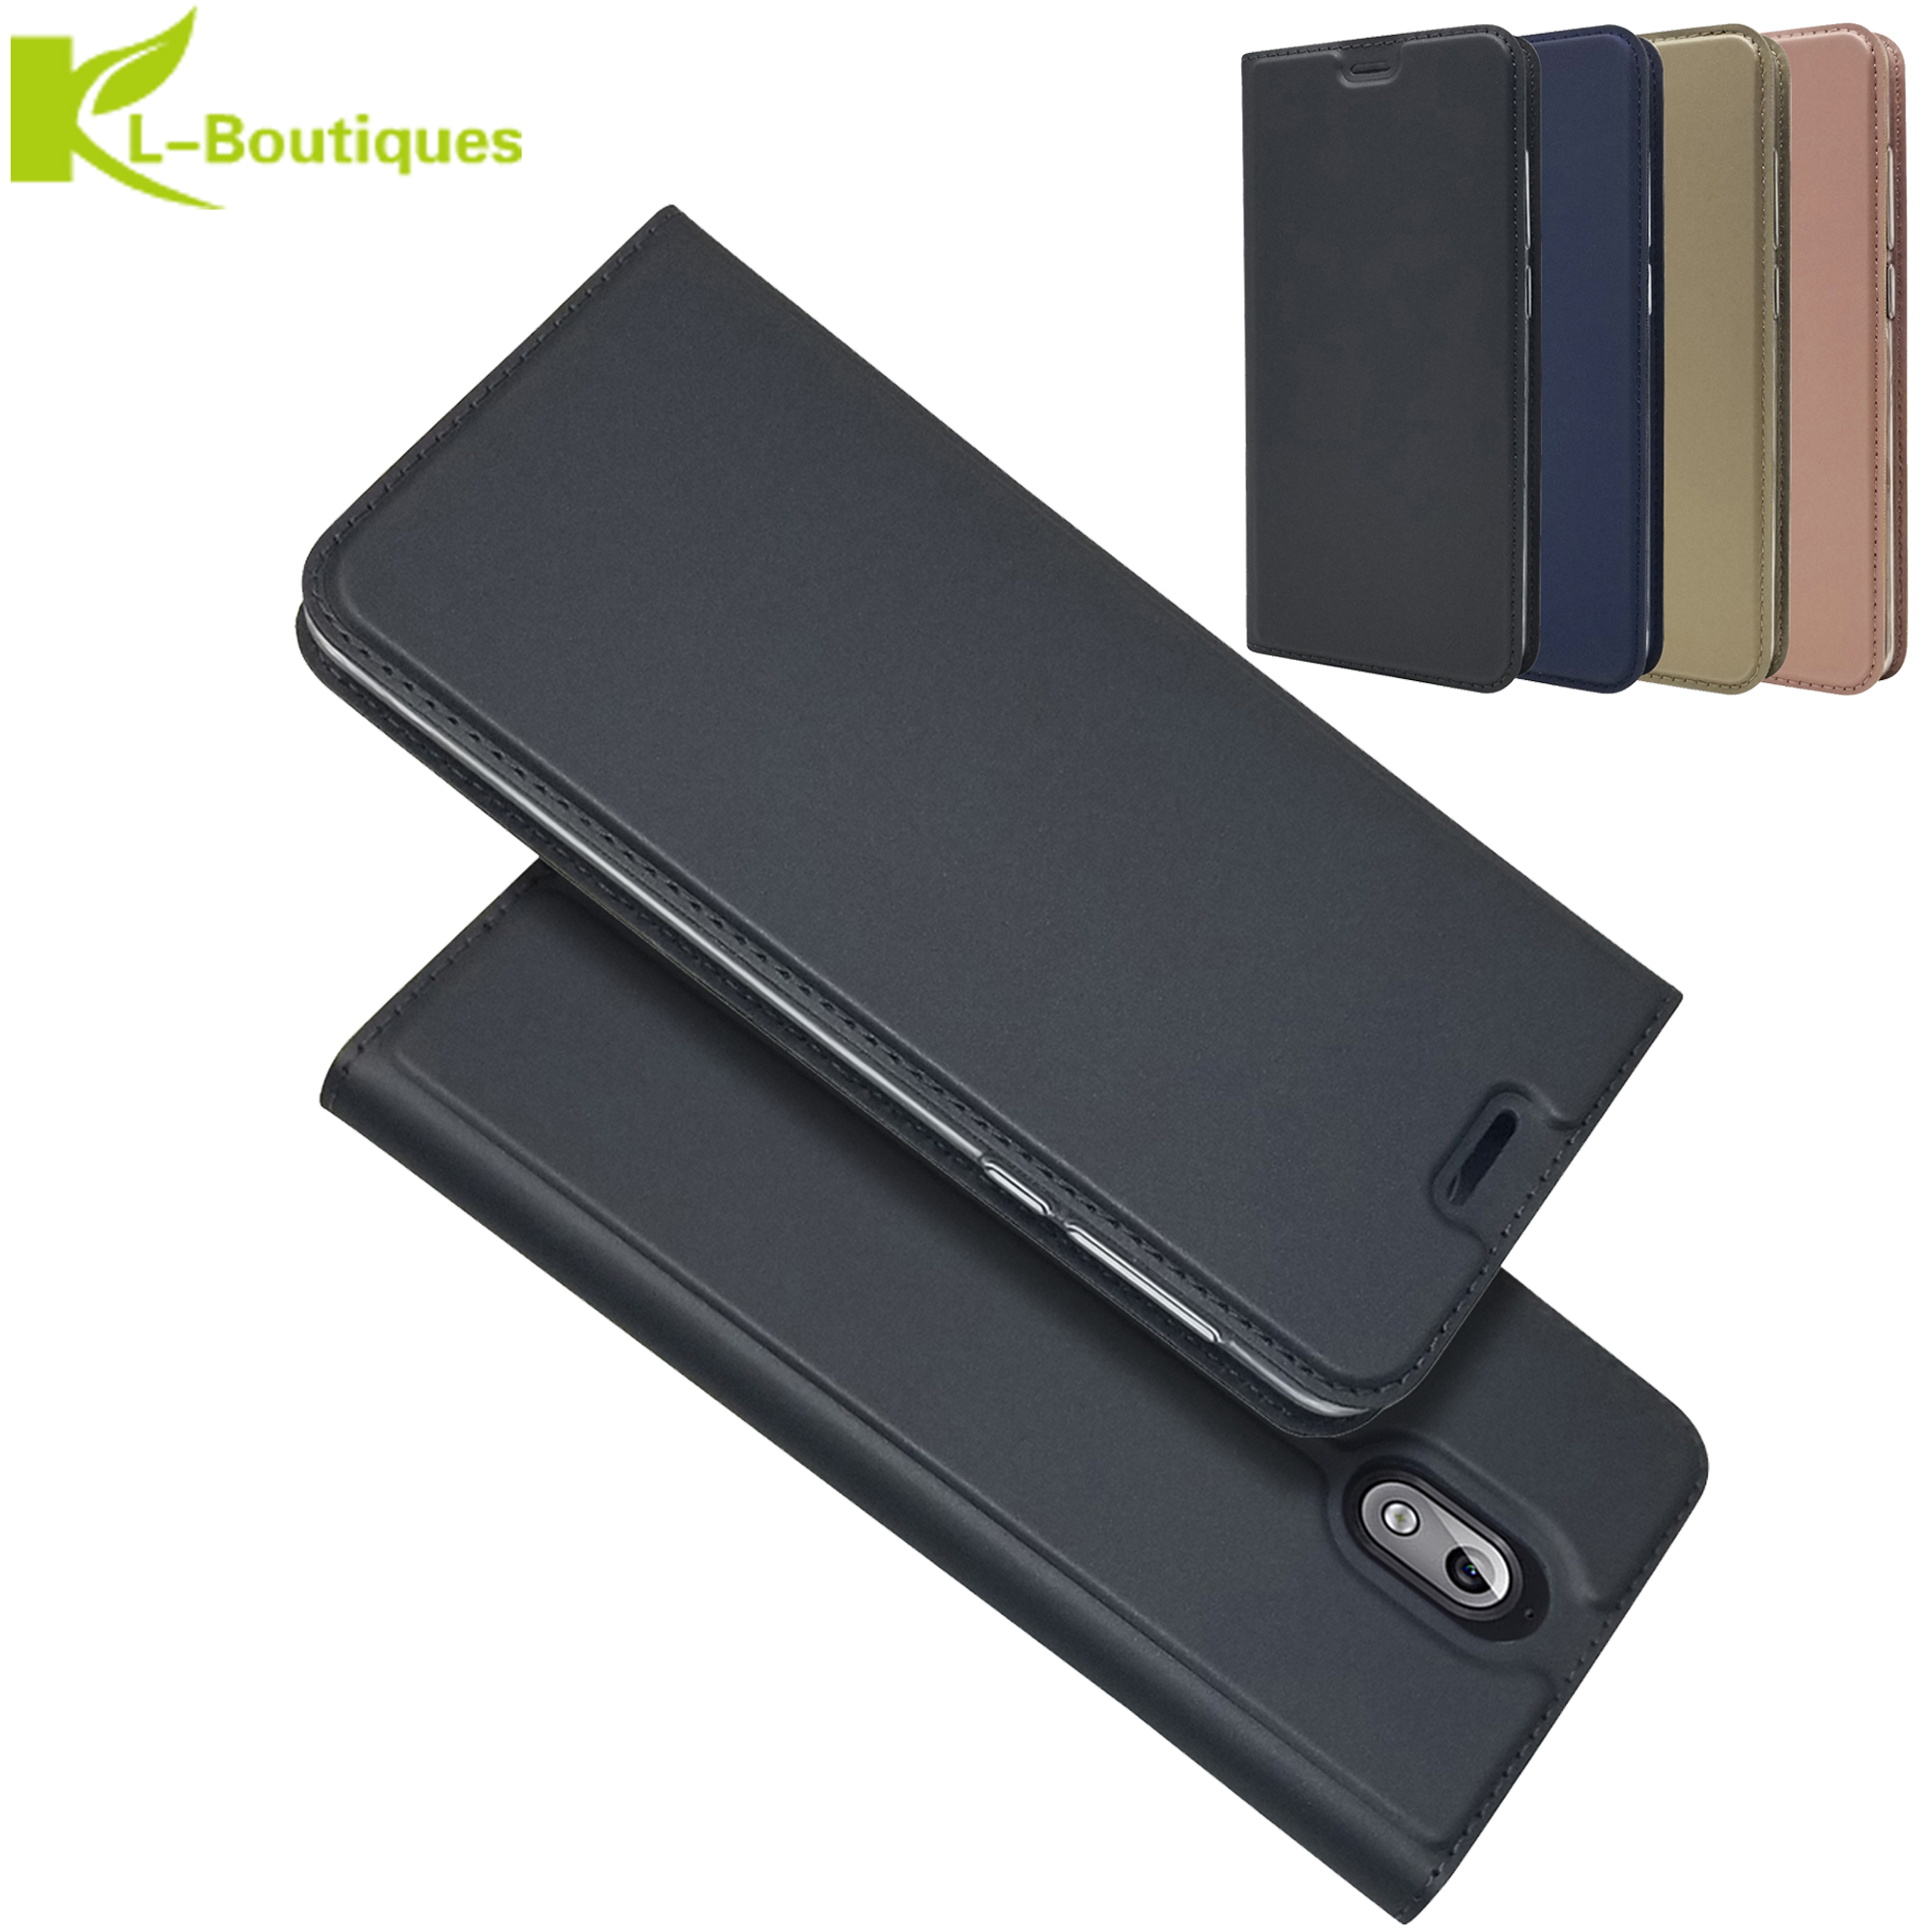 For <font><b>Nokia</b></font> <font><b>3</b></font> <font><b>Case</b></font> Cover ForNokia3 <font><b>Case</b></font> Magnetic Leather Cover For <font><b>Nokia</b></font> <font><b>3</b></font> TA-<font><b>1032</b></font> TA-1020 TA -1038 <font><b>1032</b></font> 1020 1038 Phone <font><b>Cases</b></font> image